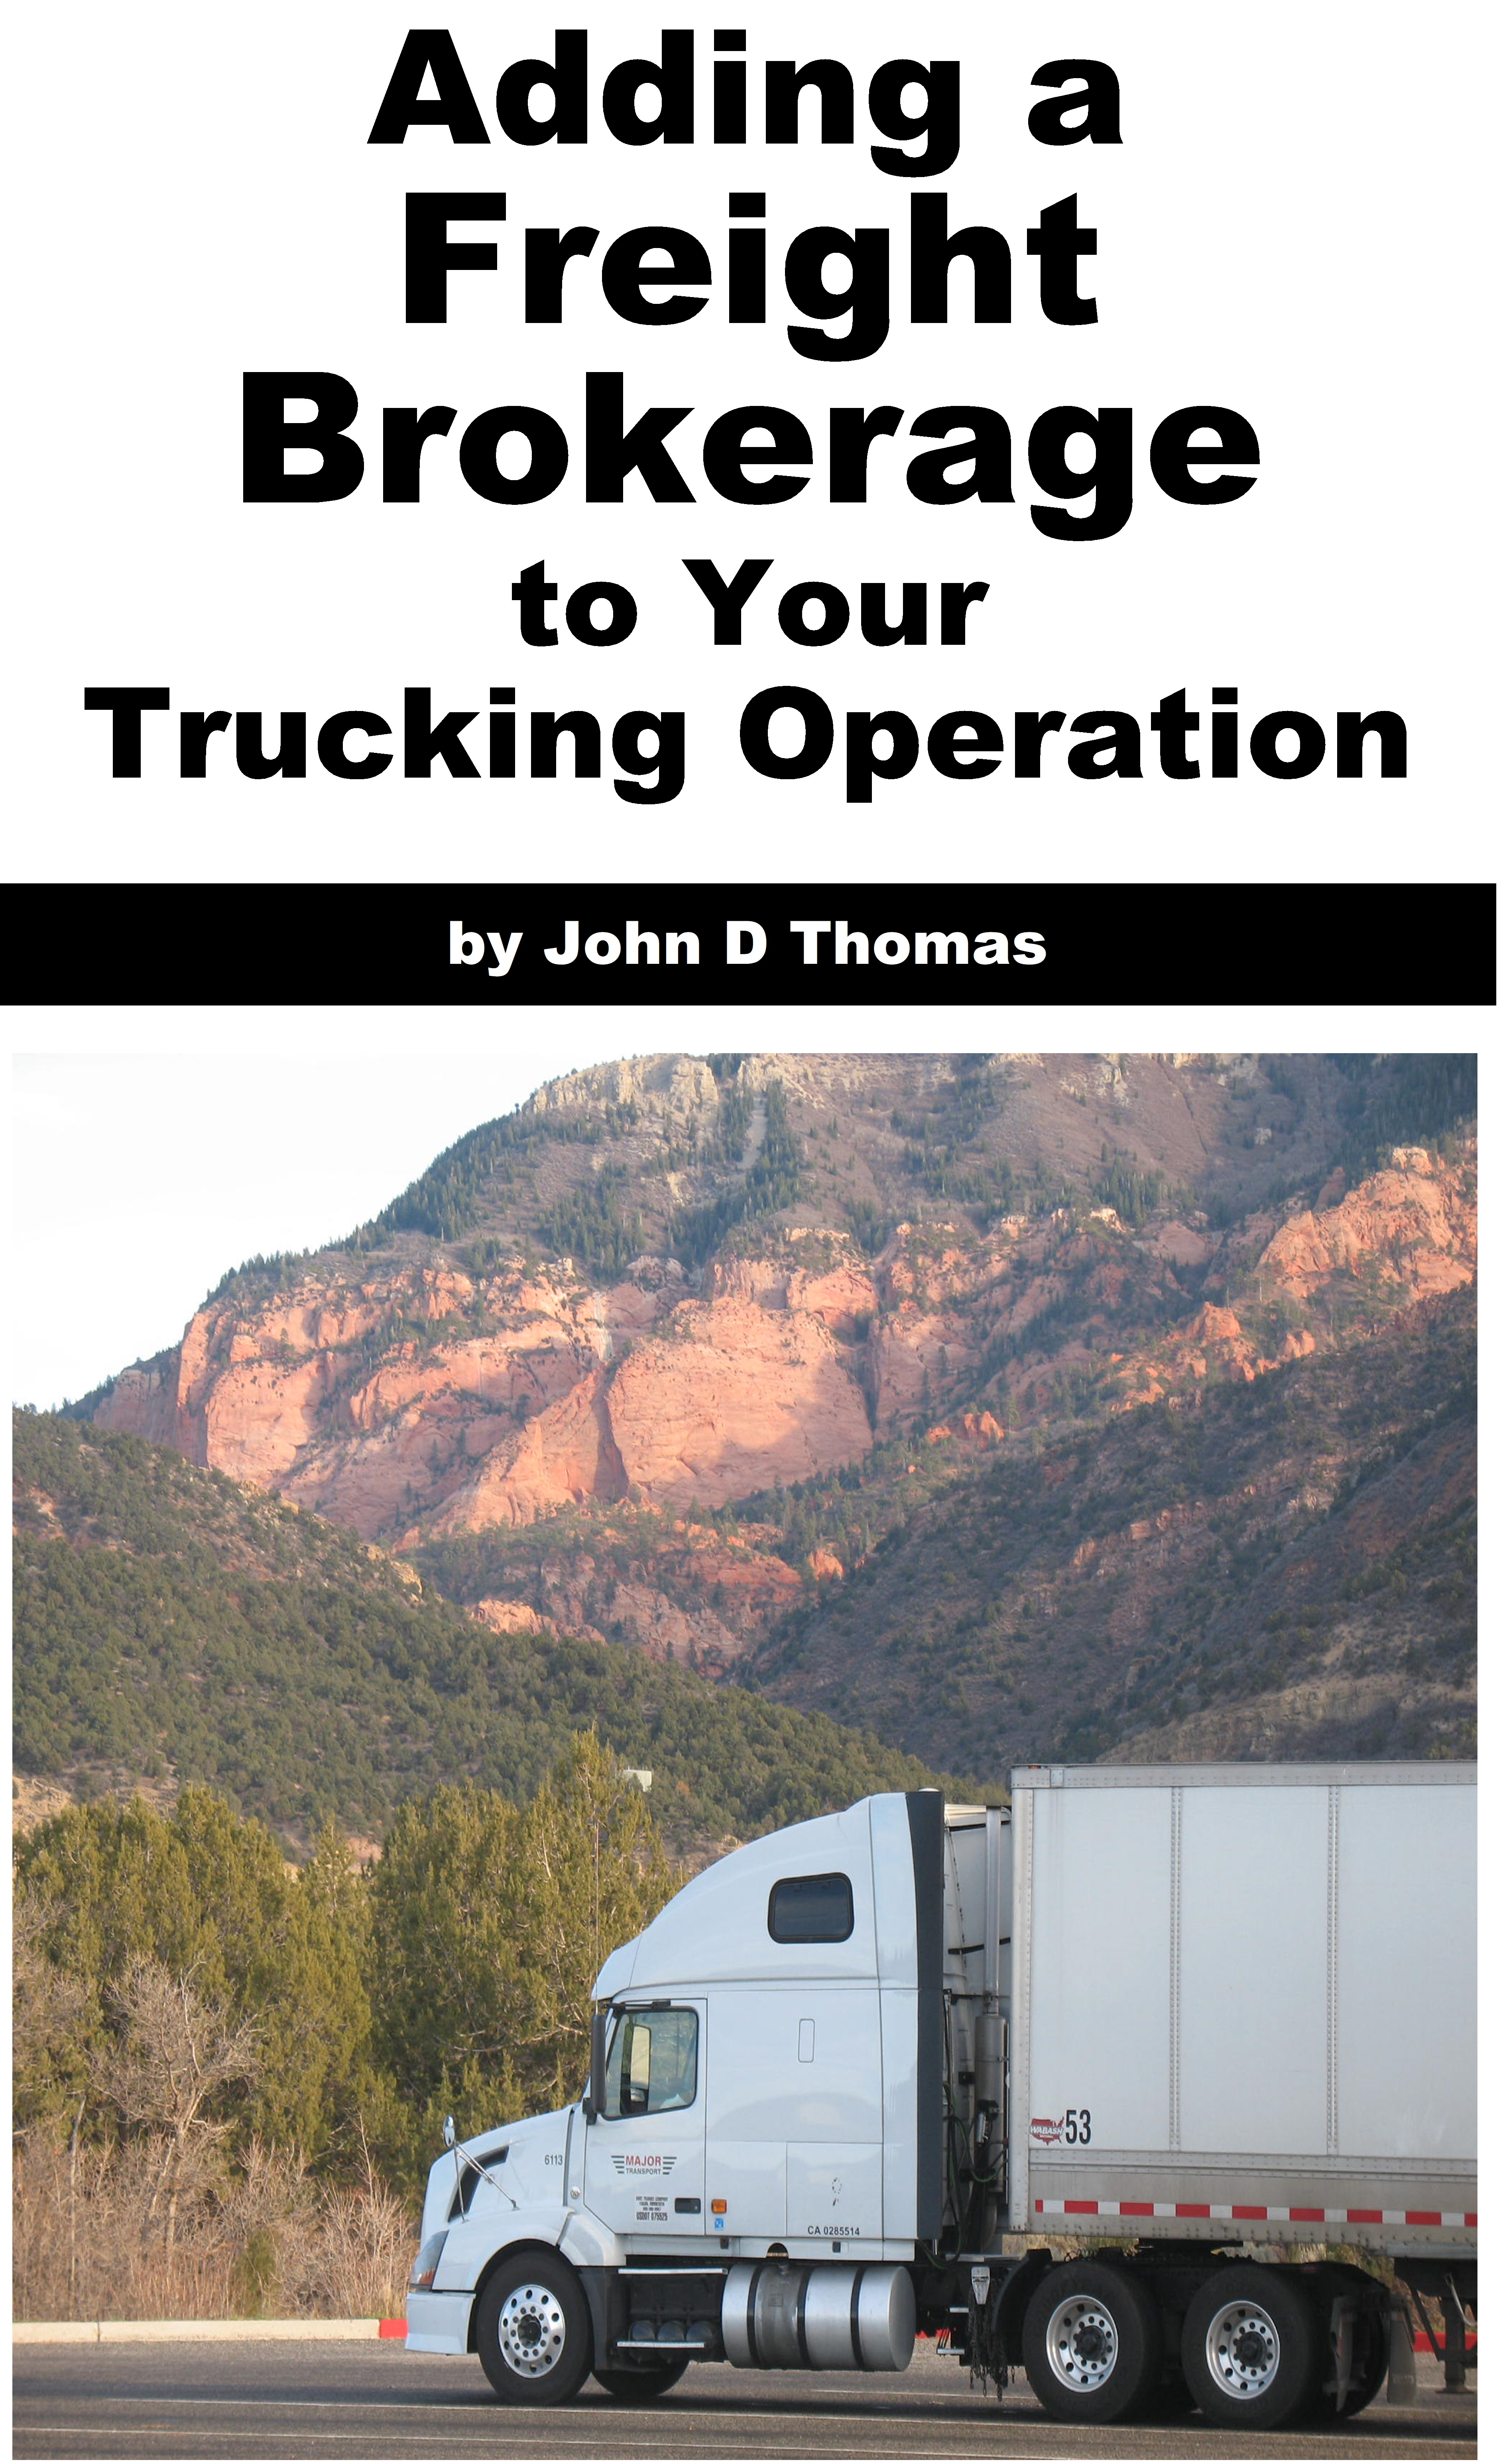 From Trucking to Brokering